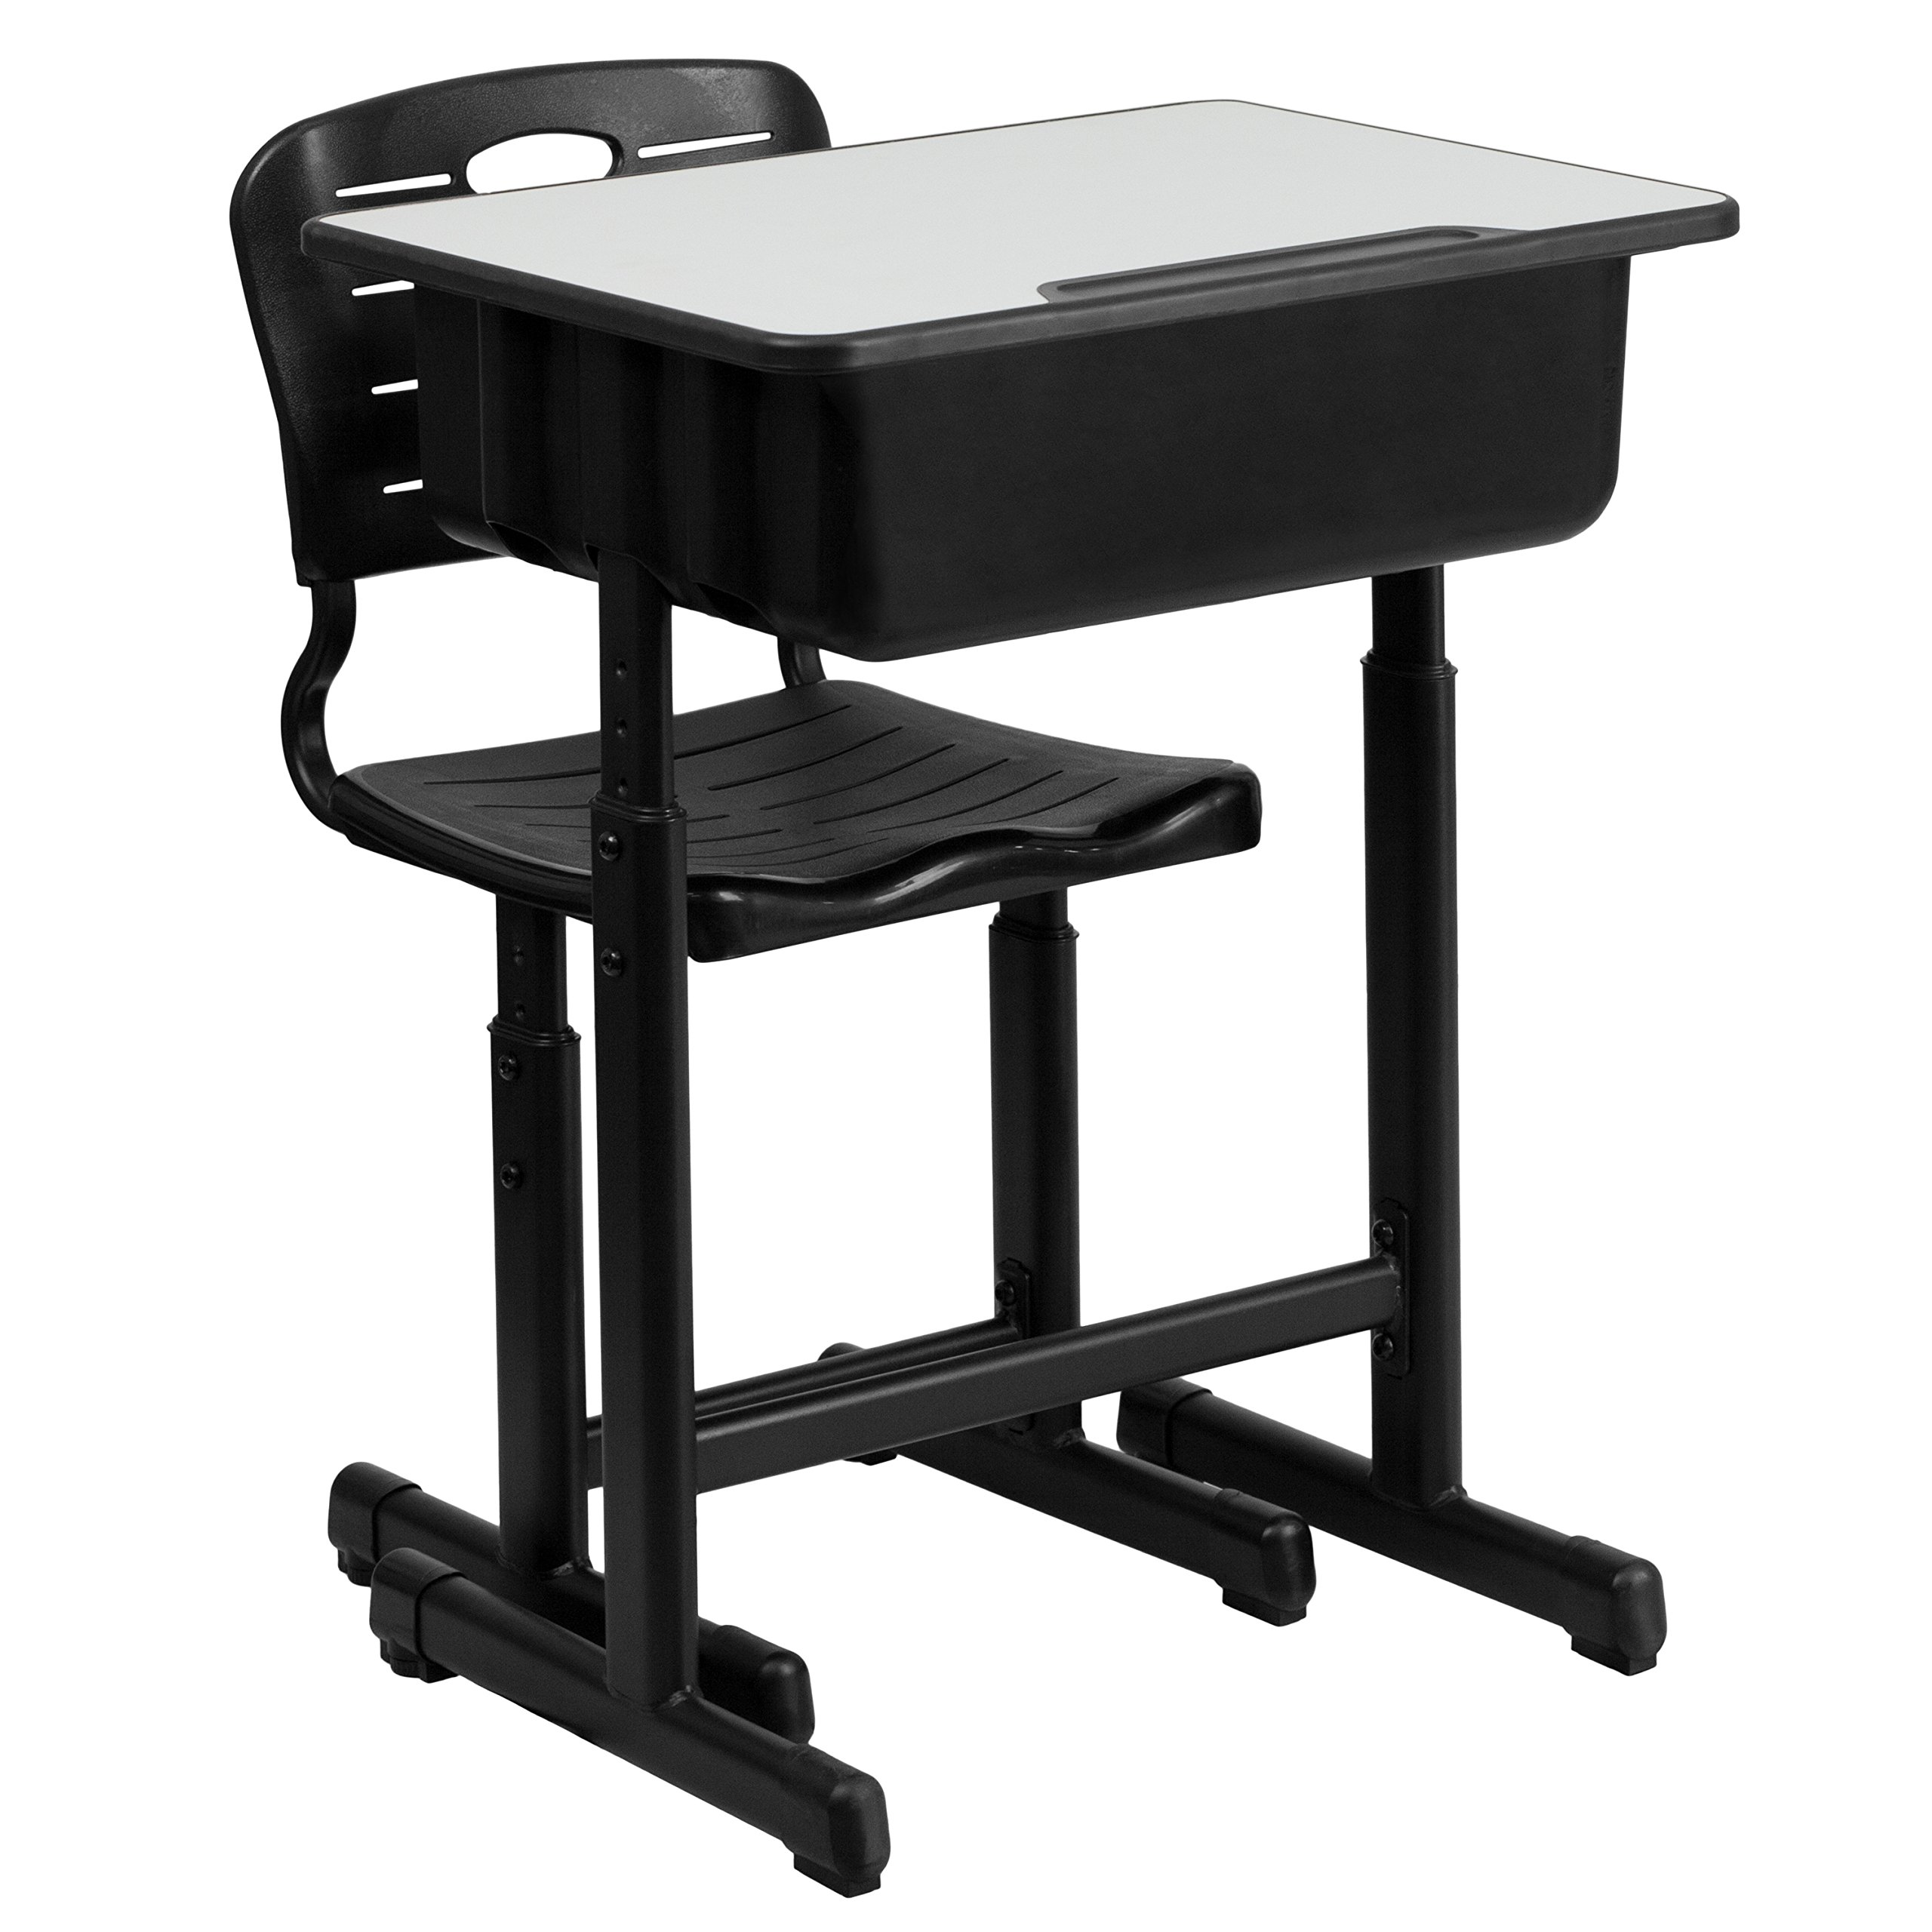 Flash Furniture Adjustable Height Student Desk and Chair with Black Pedestal Frame by